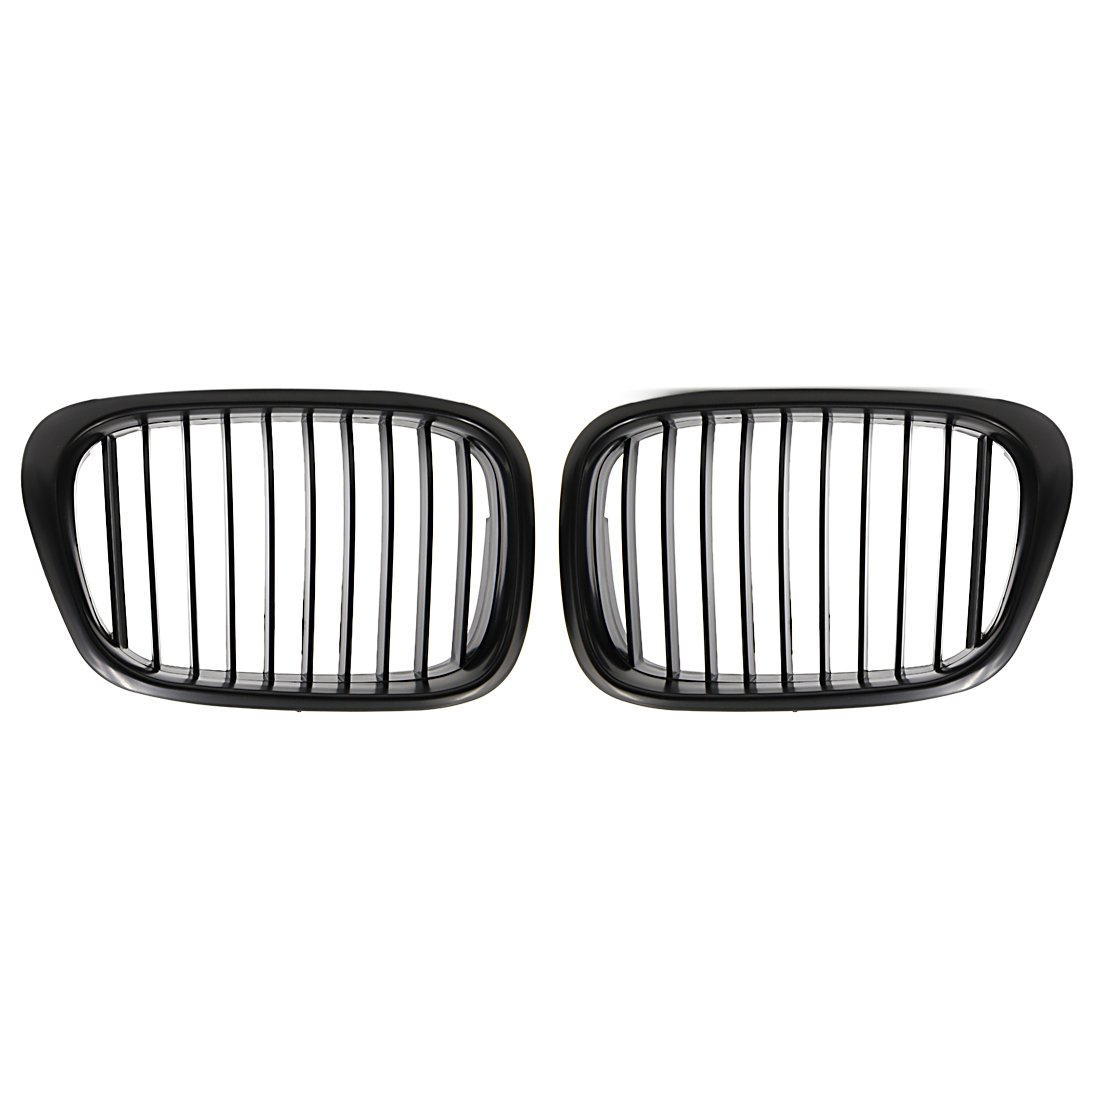 uxcell Car Matte Black Front Kidney Grille Grill For 97-03 BMW E39 5 Series 525i 528i 530i 540i M5 4-Door a17060300ux0471